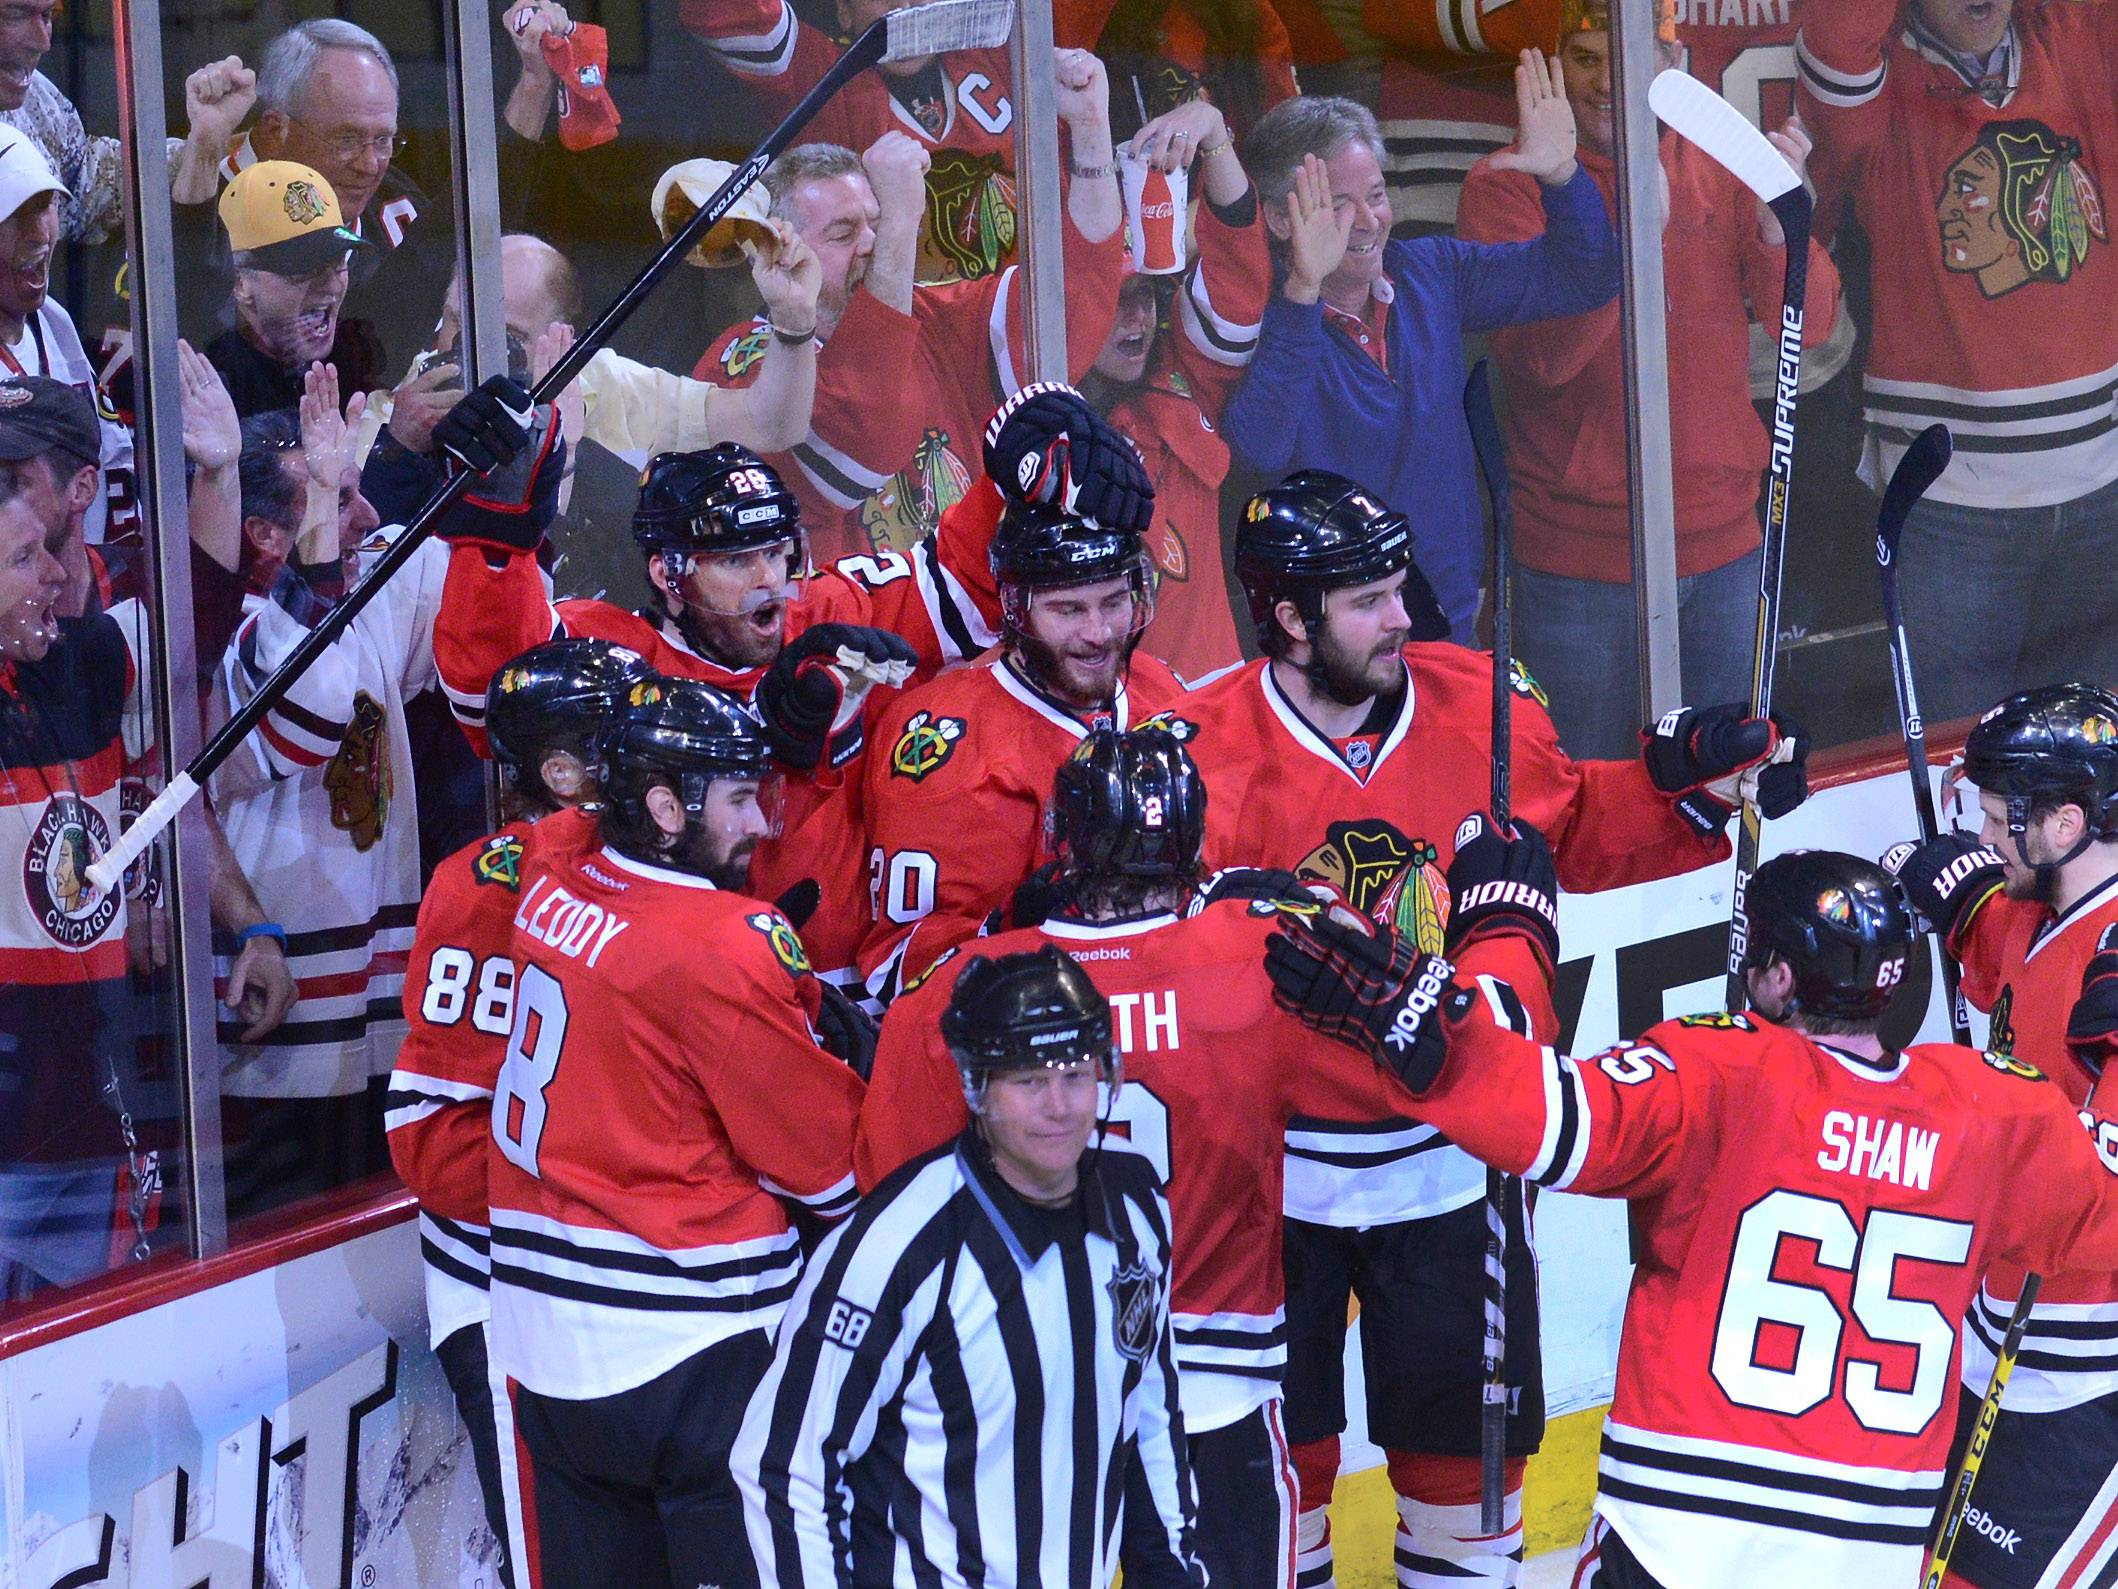 Blackhawks center Michal Handzus, with raised stick, is mobbed by his teammates after scoring the game-winning goal in double overtime Wednesday night against the Kings in Game 5 of the Western Conference finals at the United Center.